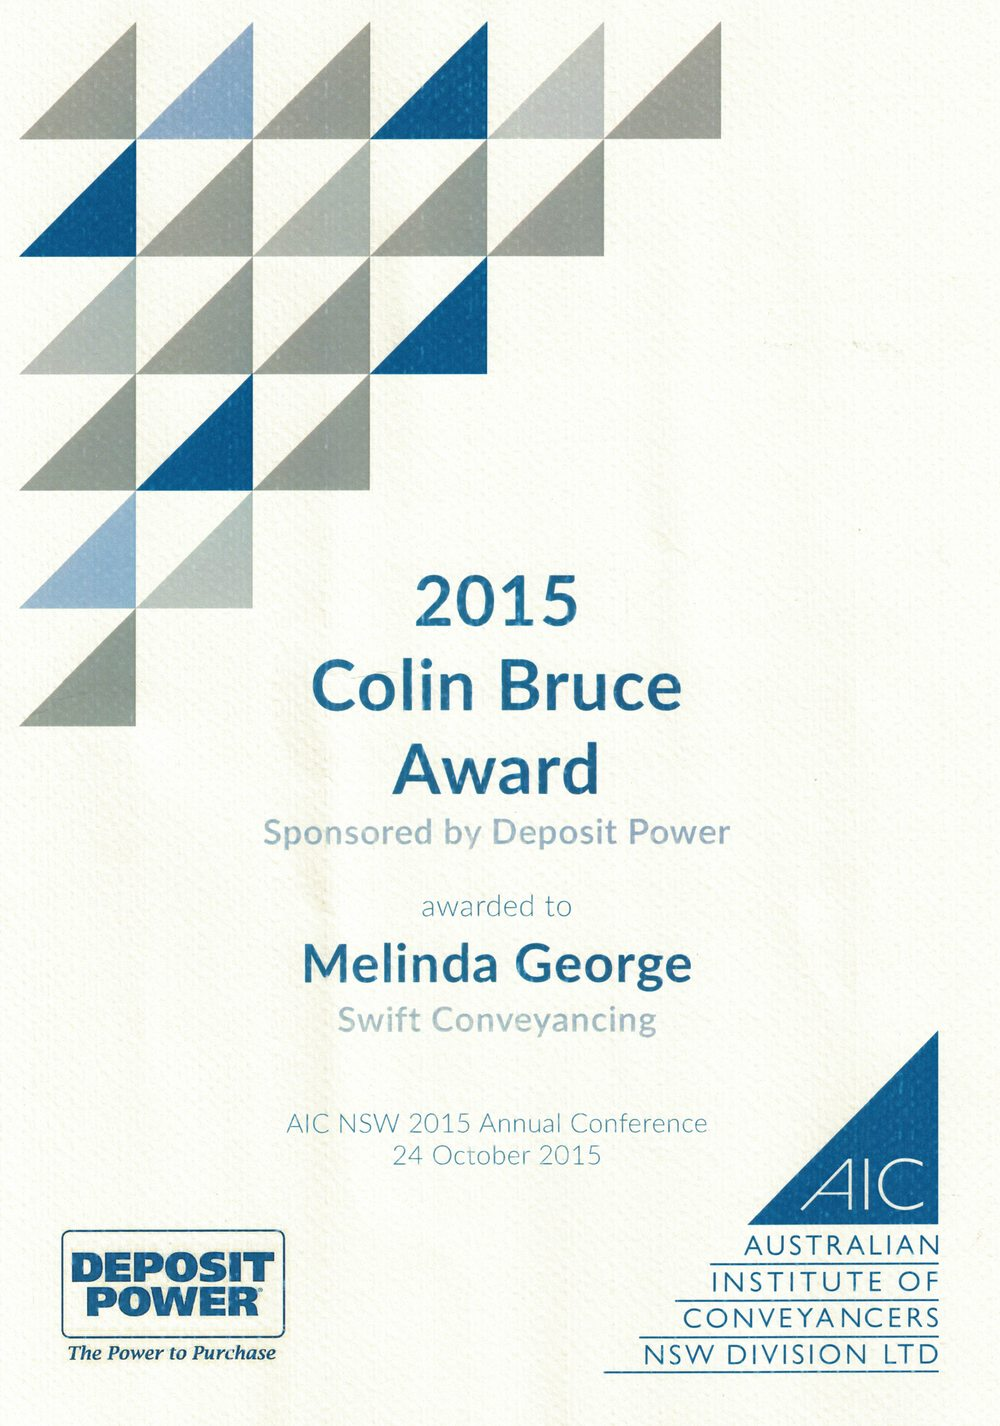 Colin Bruce Award Winner 2015